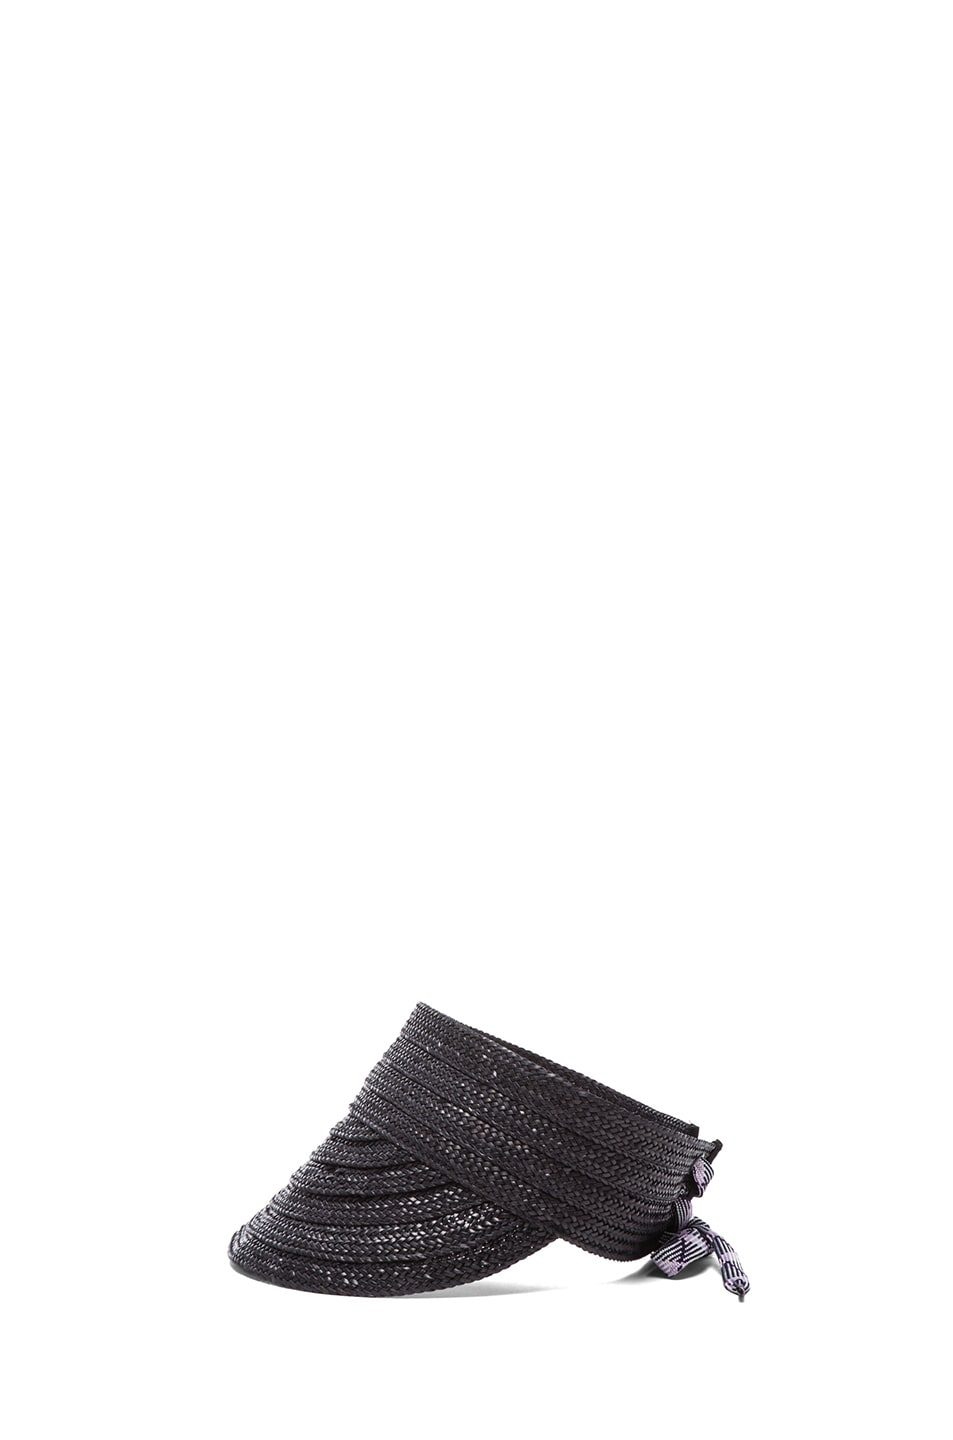 Image 3 of rag & bone Straw Visor in Black